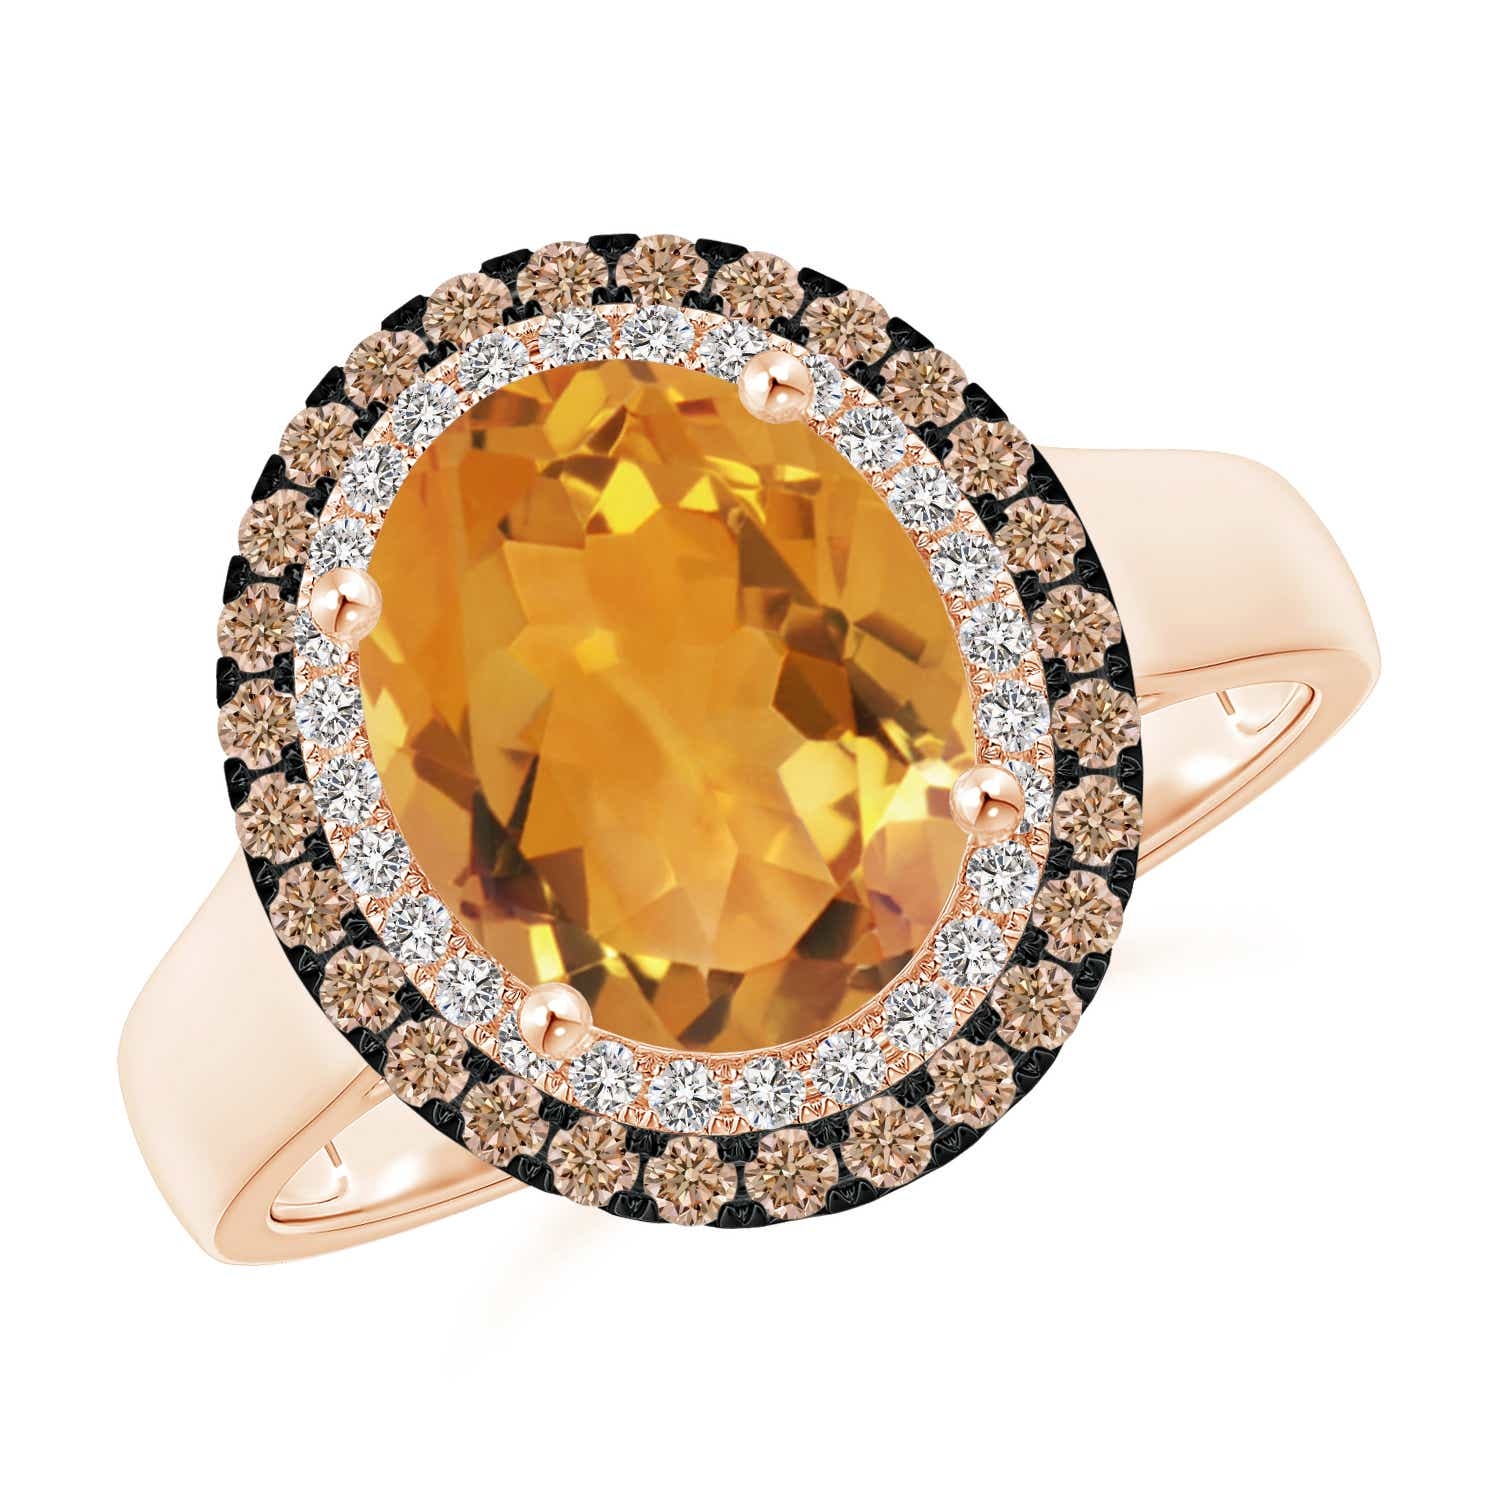 Angara Oval Citrine Solitaire Ring with Pave Diamonds in 14K Rose Gold fyciudf